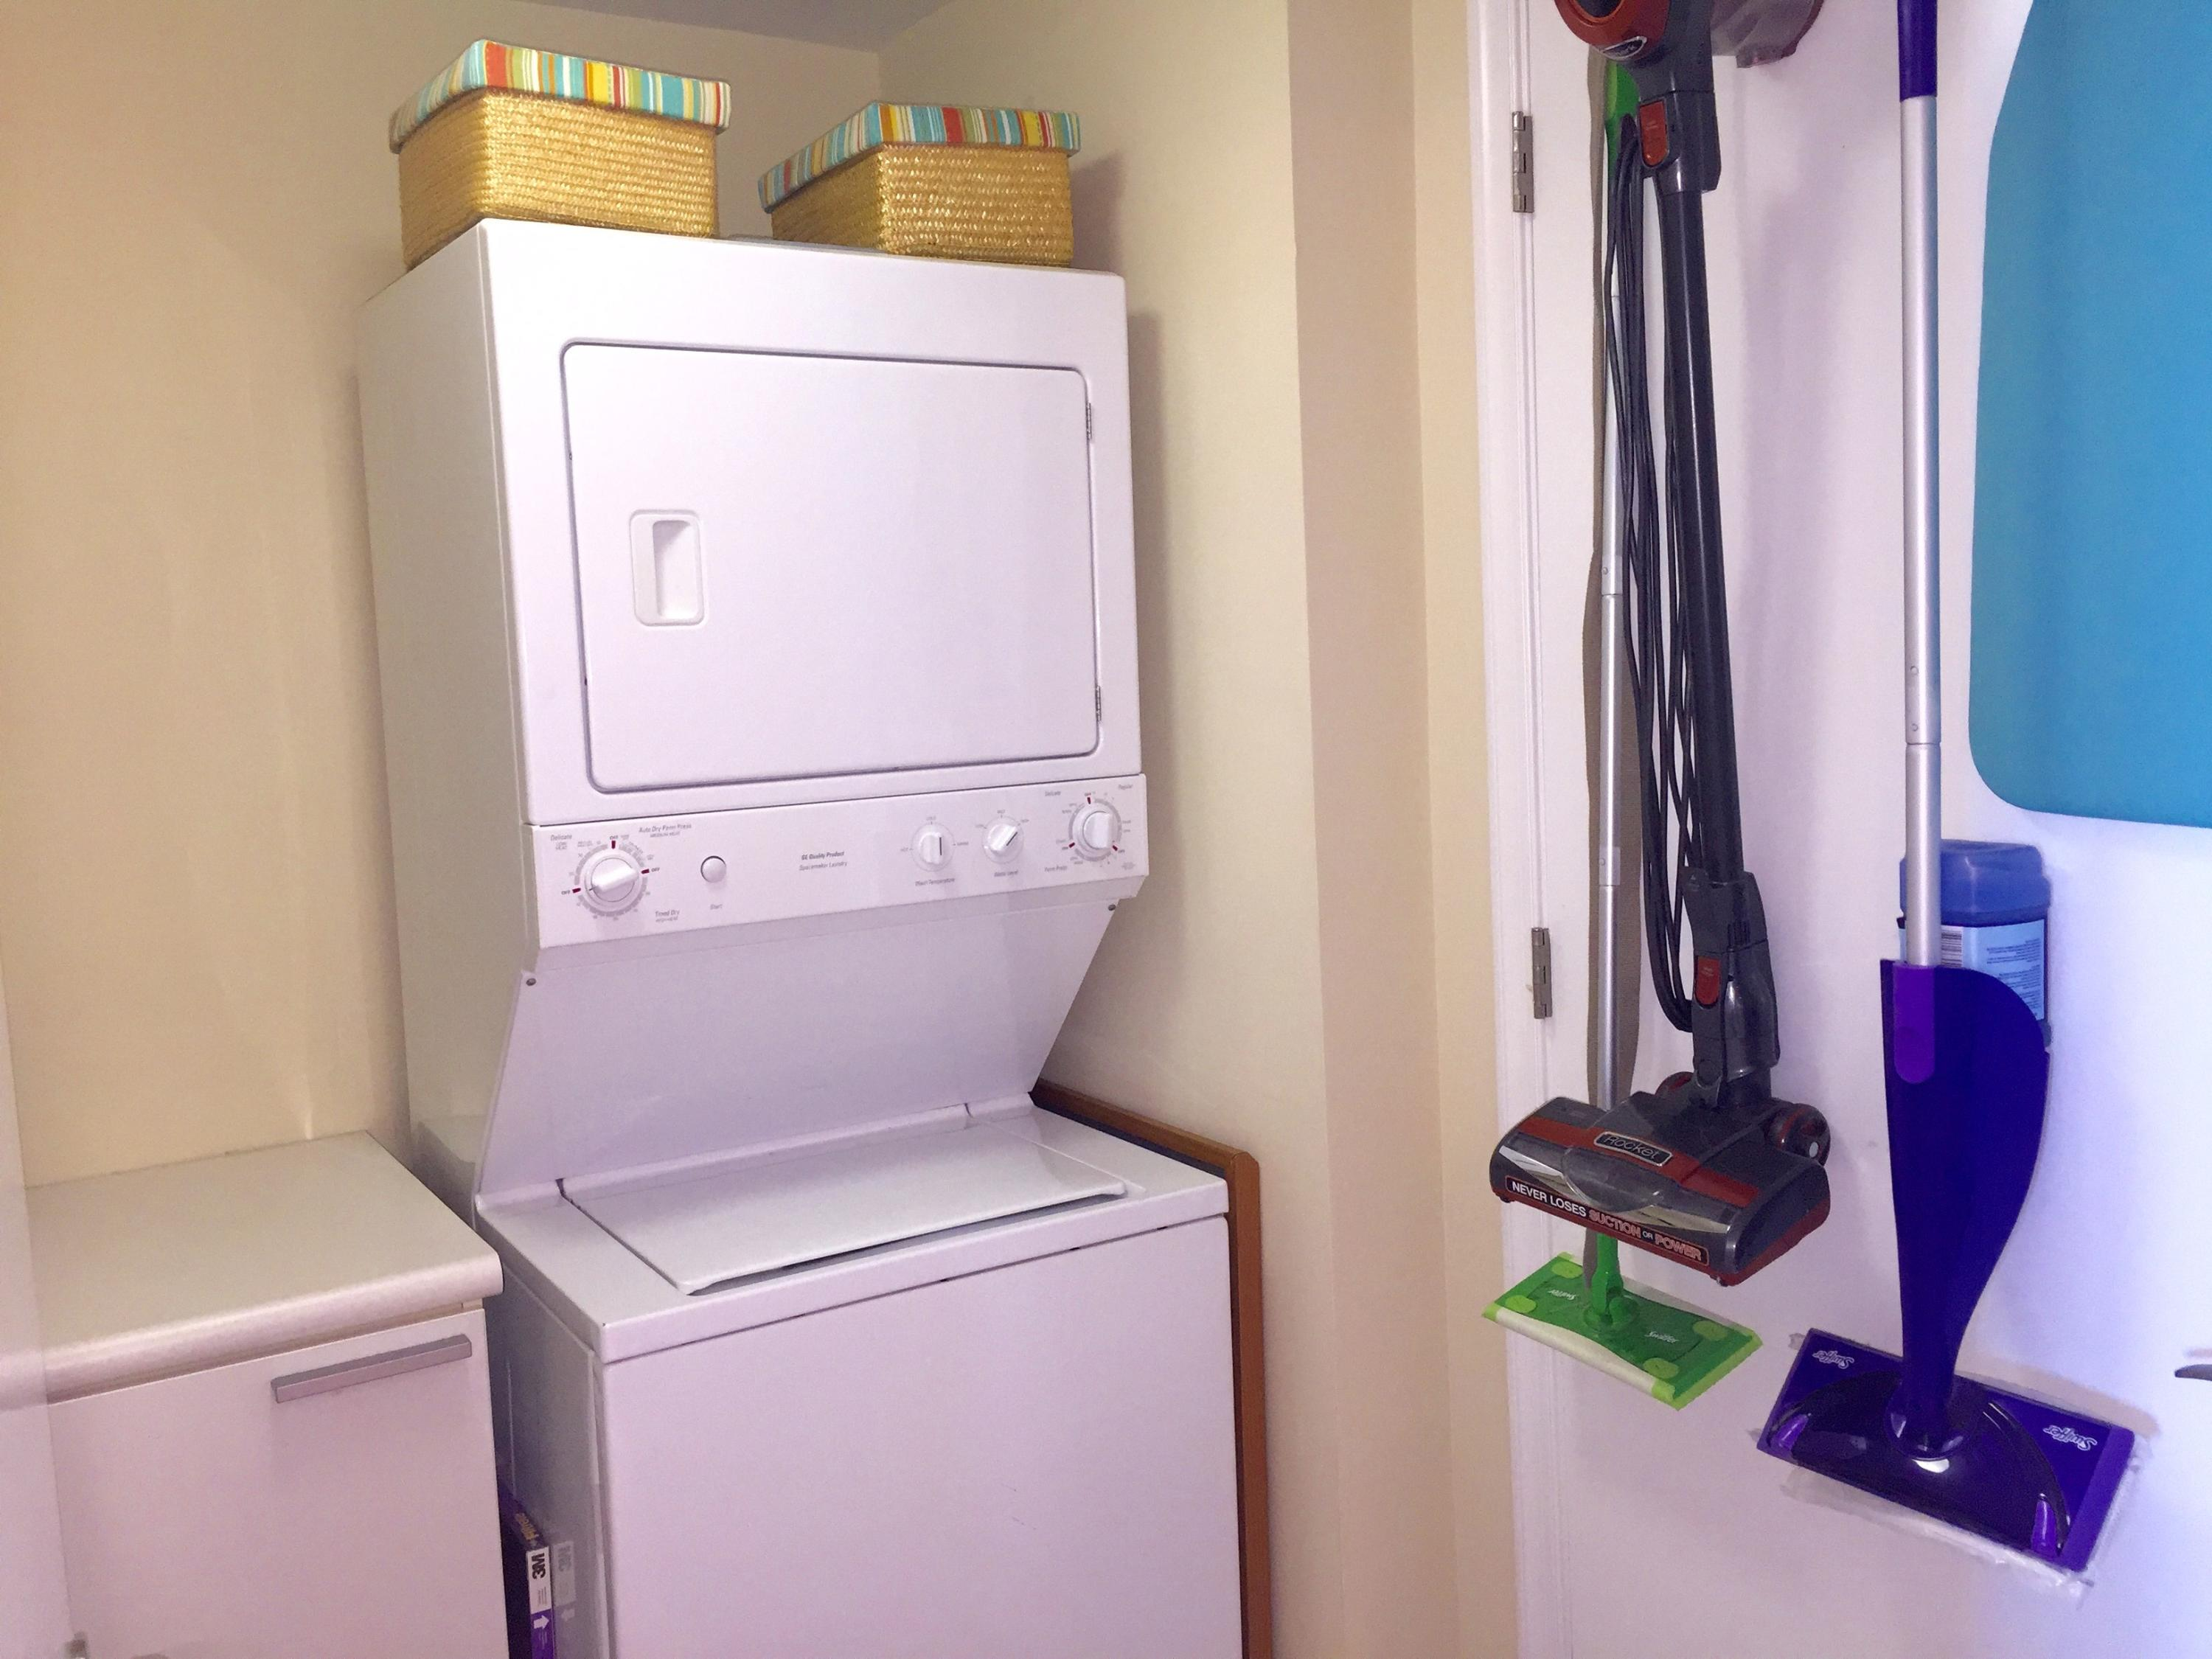 INTERIOR LAUNDRY ROOM